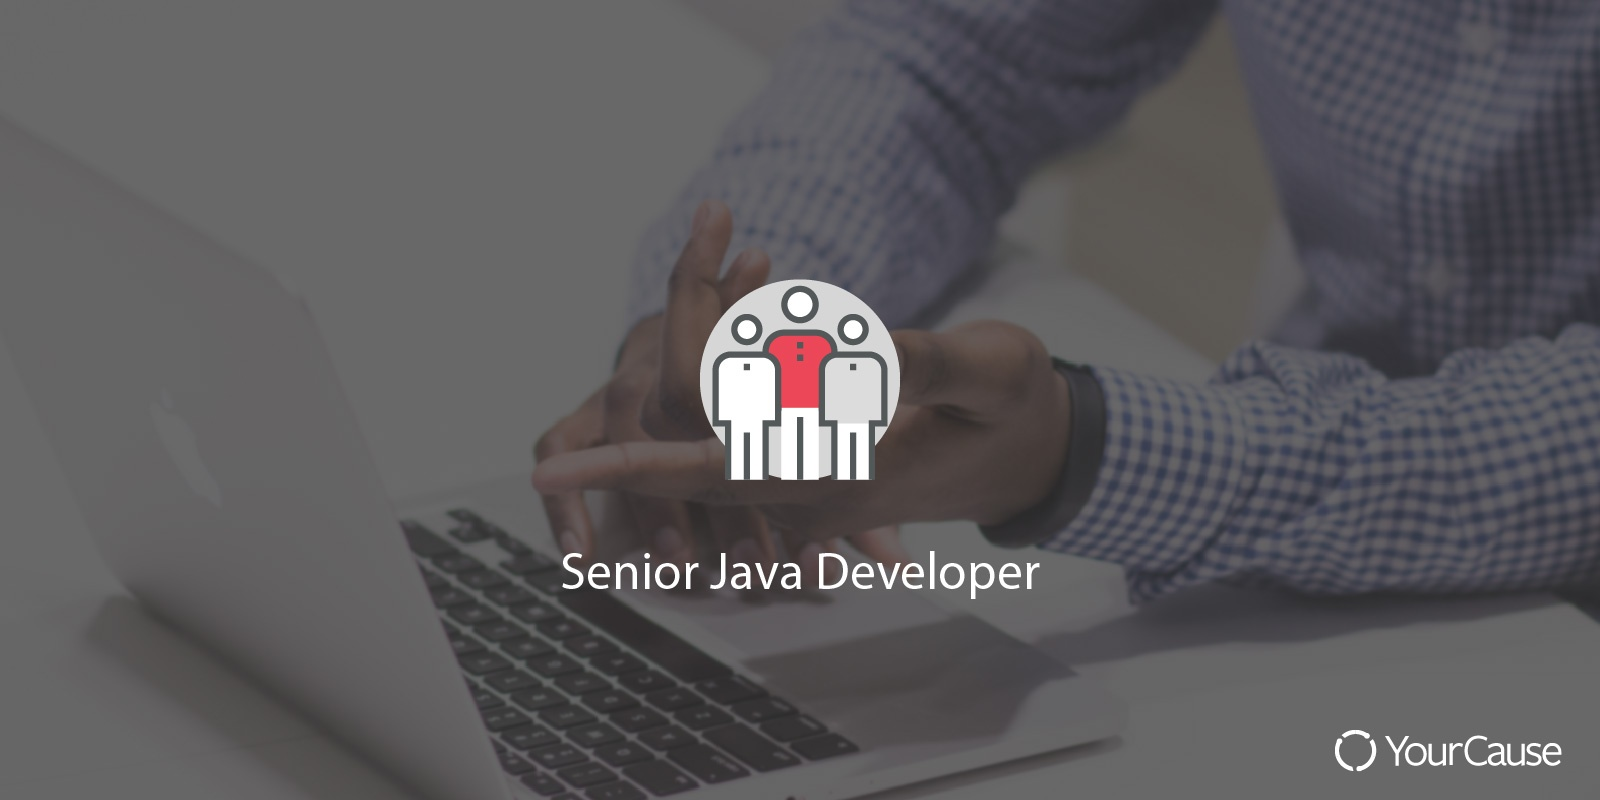 Senior-Java-Developer.jpg